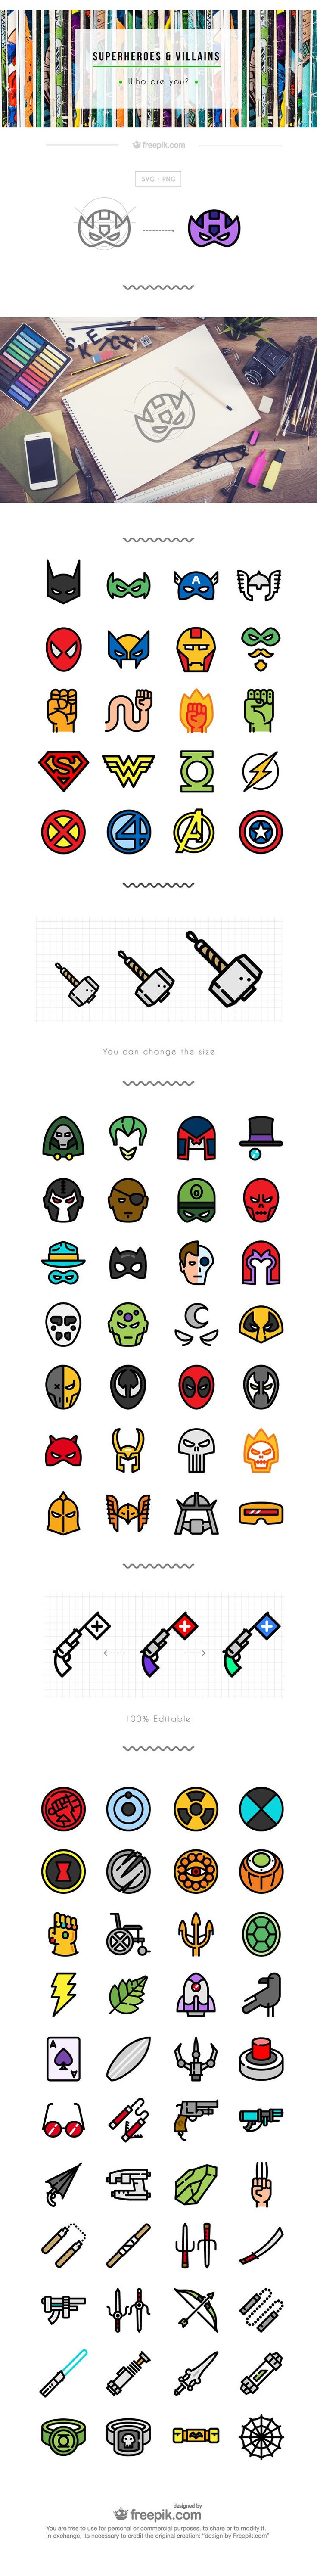 Superhero icon set flat free